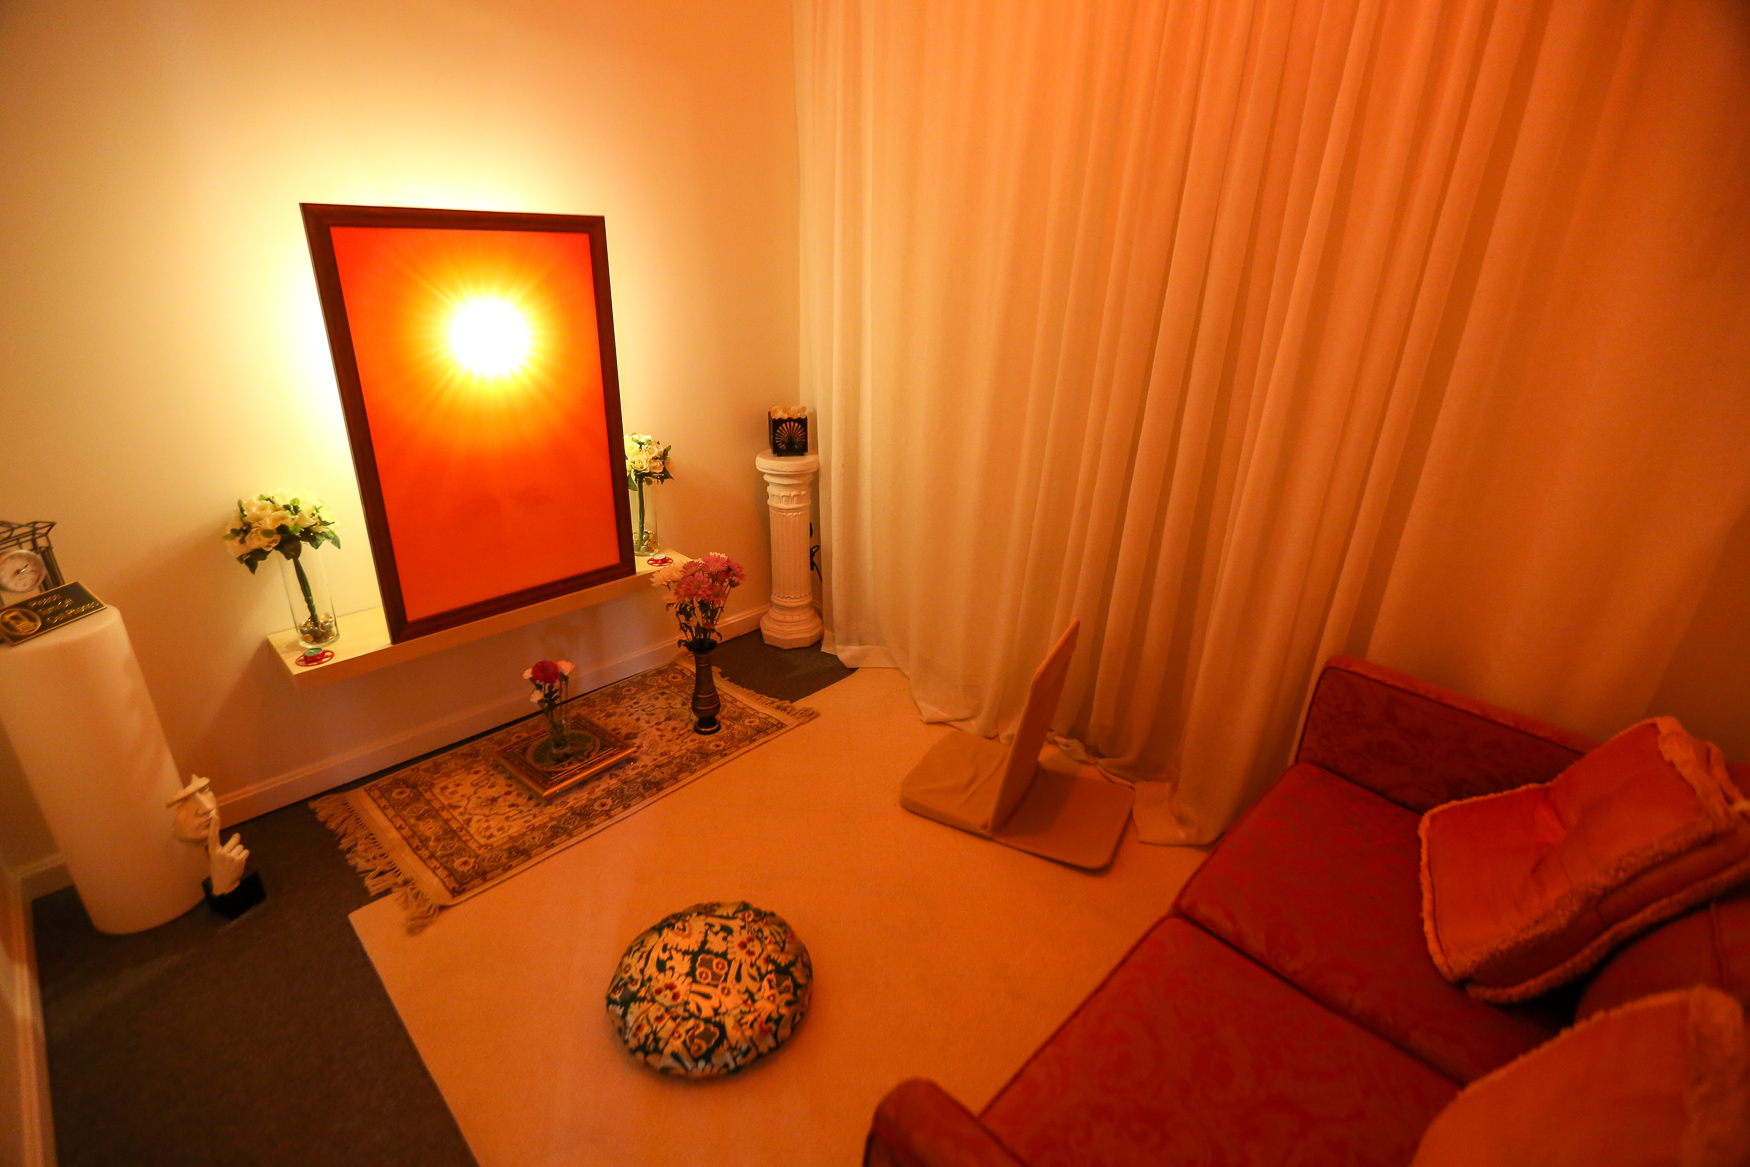 The solitary meditation room. (Amanda Andrade-Rhoades/DC Refined)